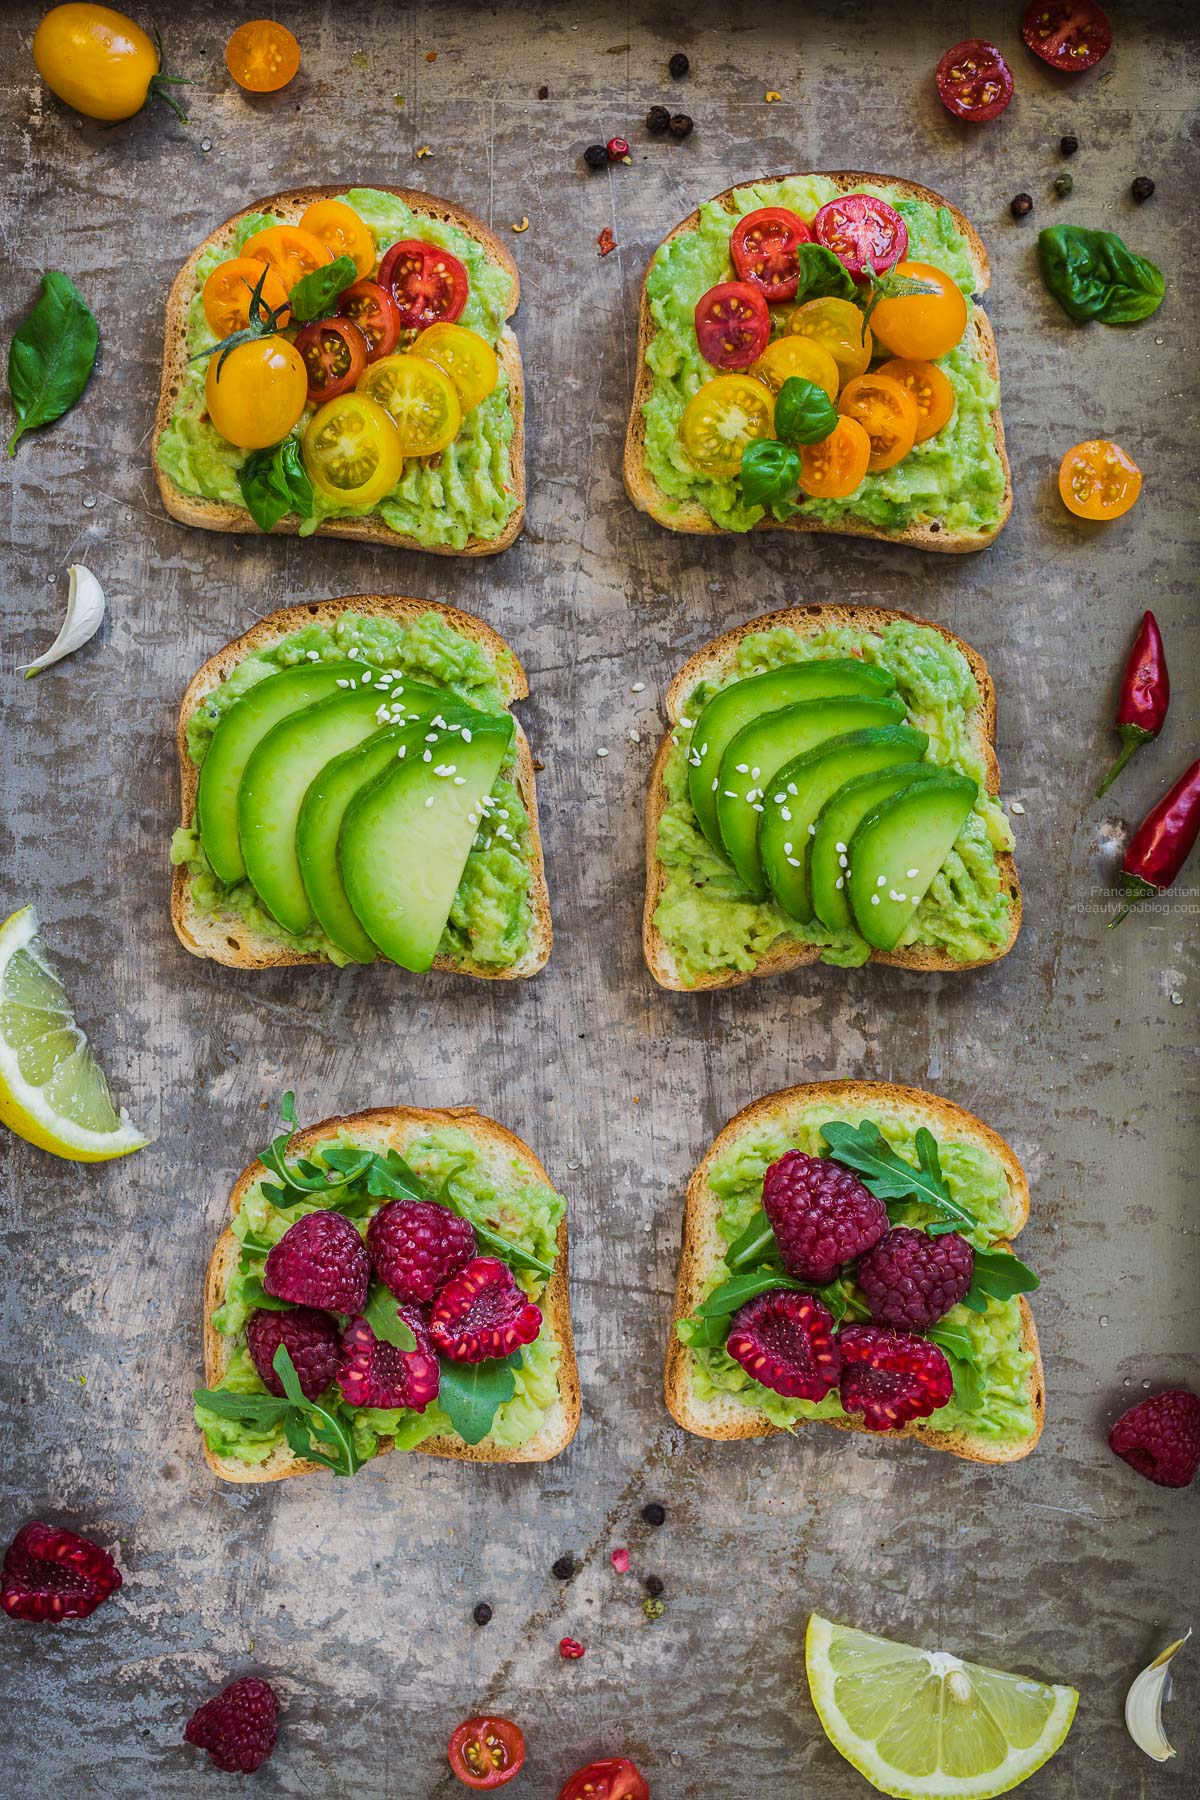 glutenfree vegan avocado toast recipe - ricetta avocado toast vegan senza glutine